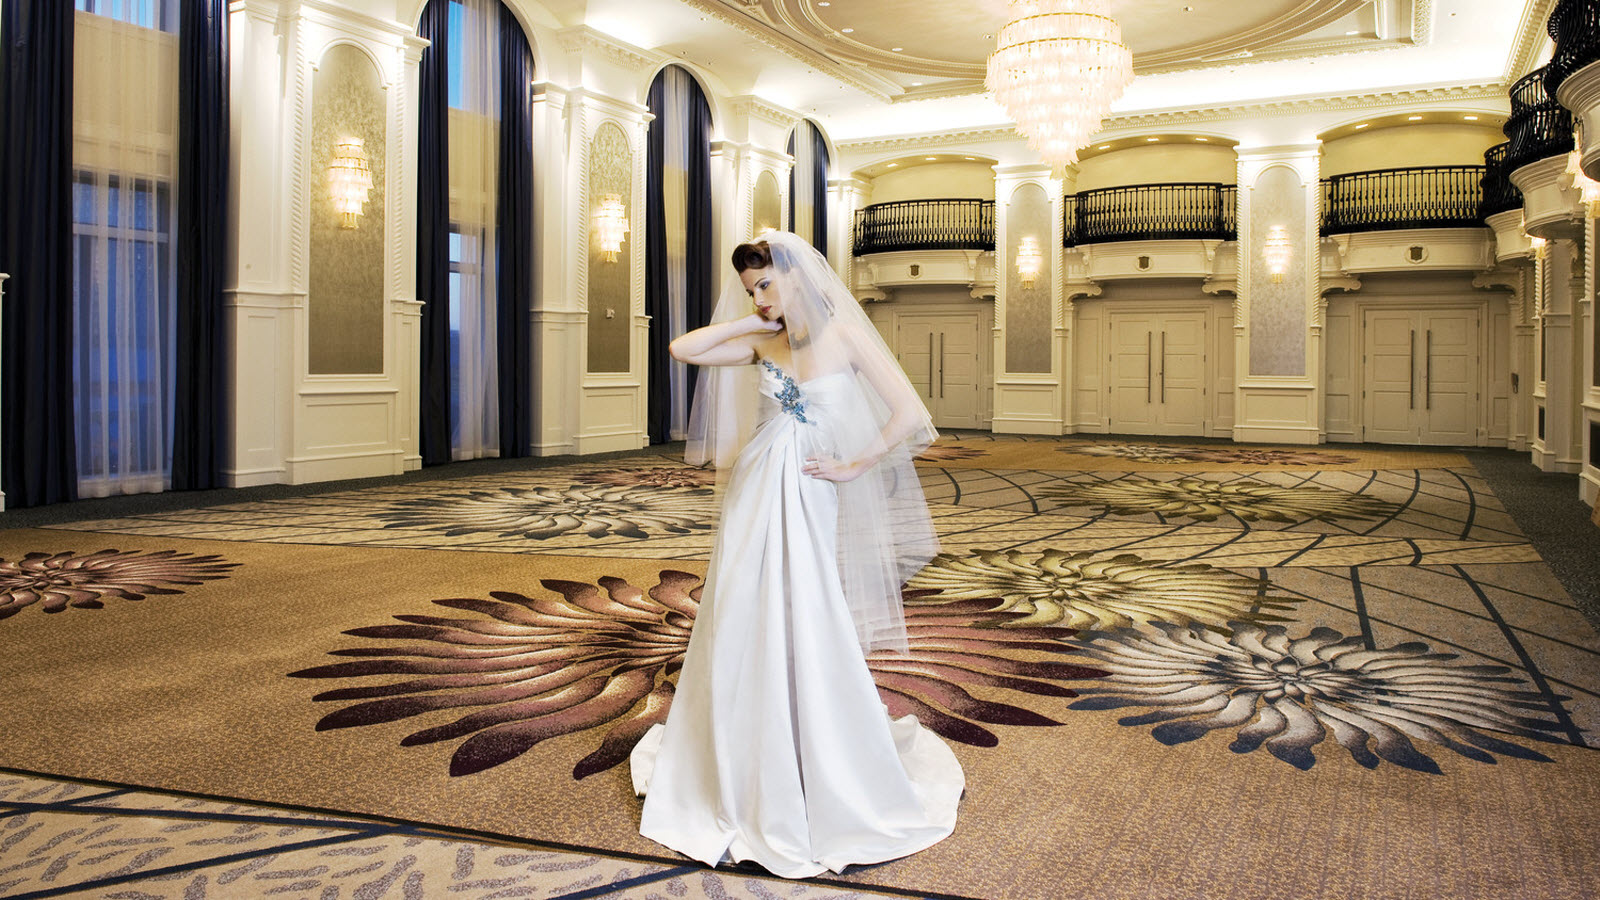 Westin Book Cadillac Detroit Wedding Venues